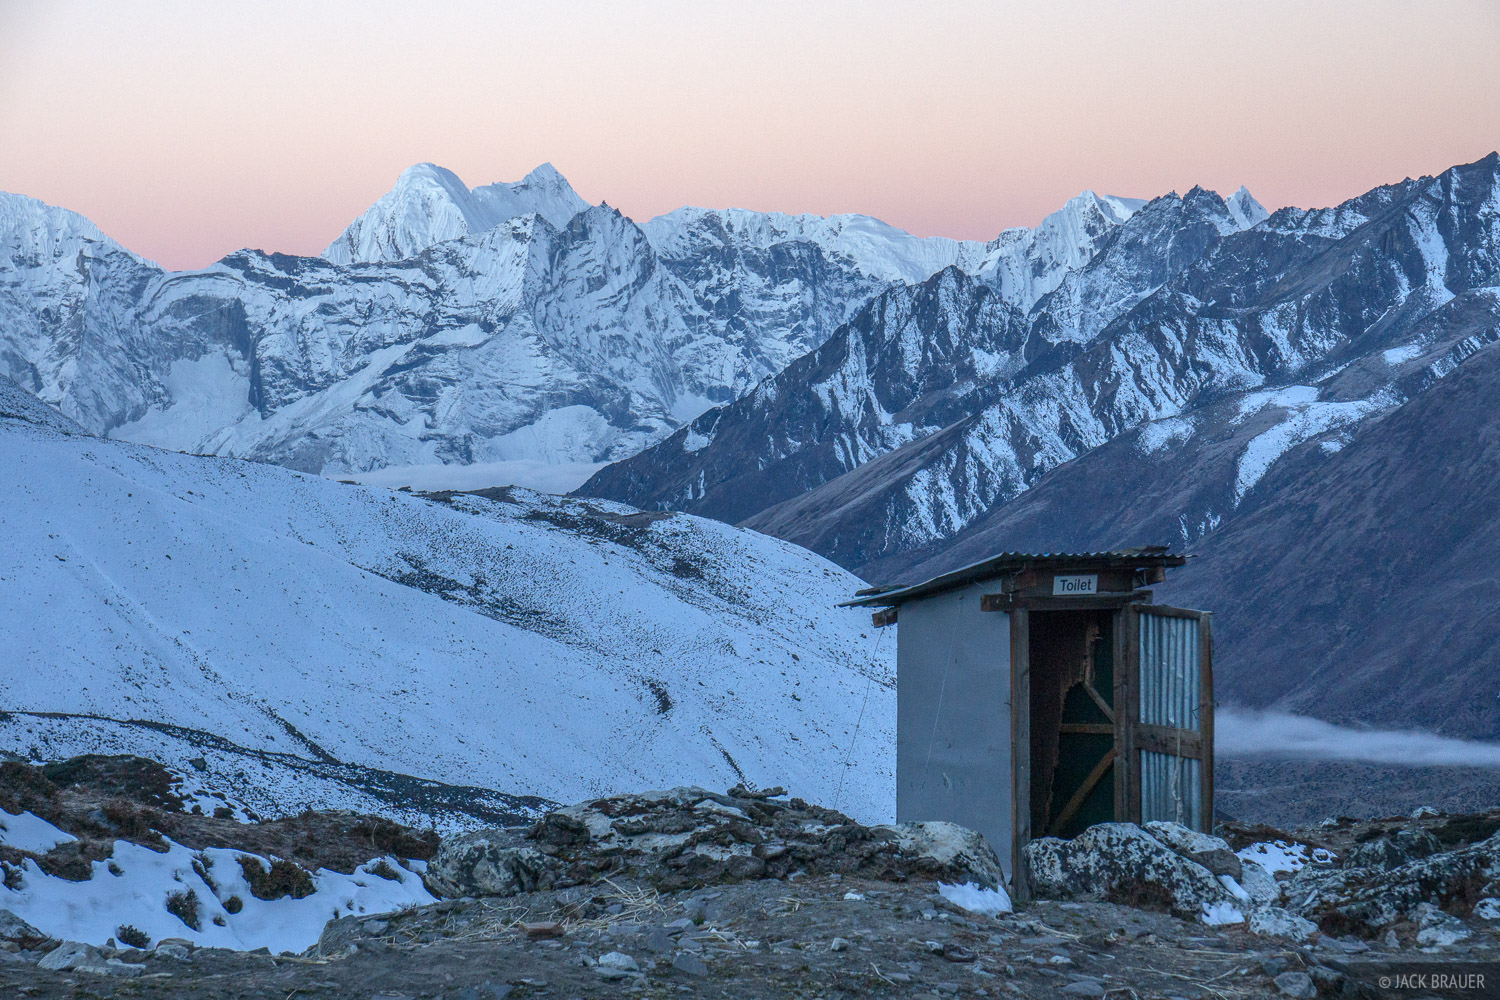 A cold outhouse, but a nice view!